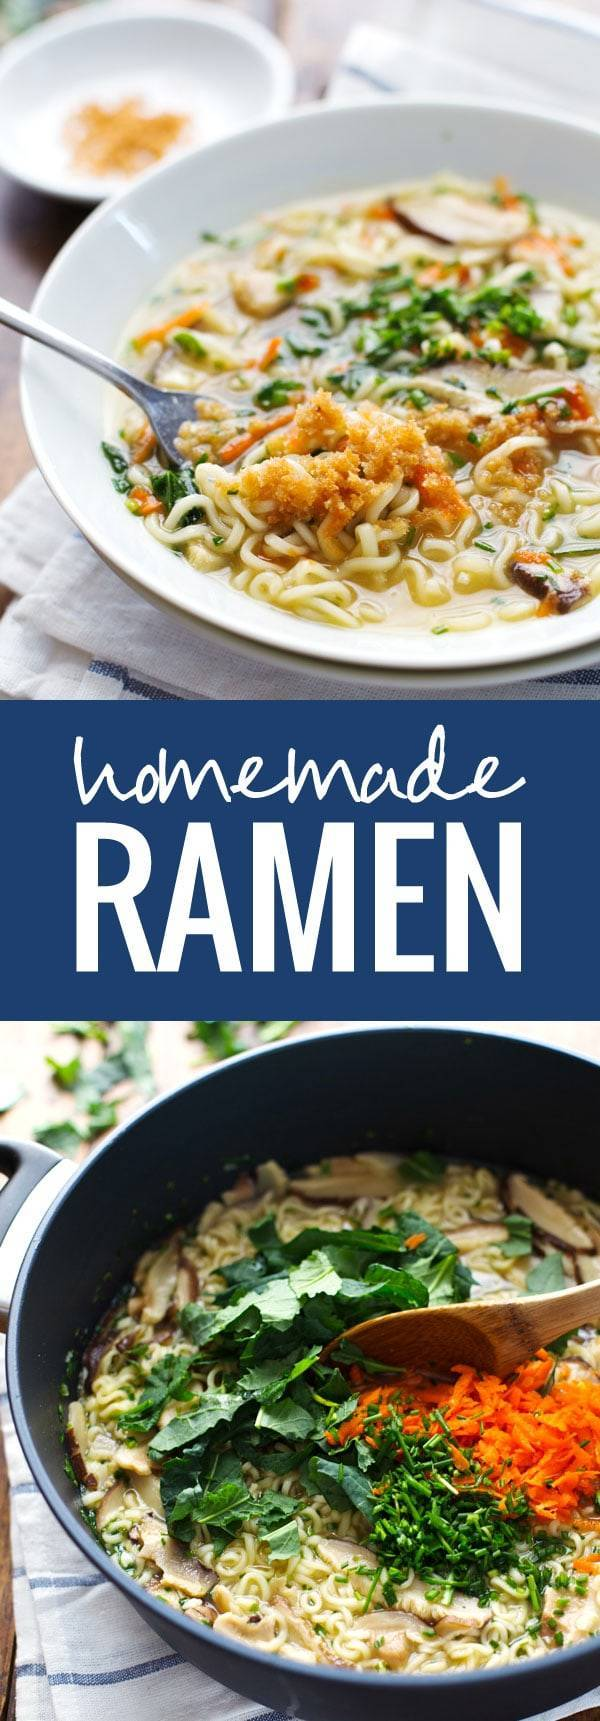 Quick Homemade Ramen - comes to life with fresh vegetables and herbs in just in 20 minutes! | pinchofyum.com